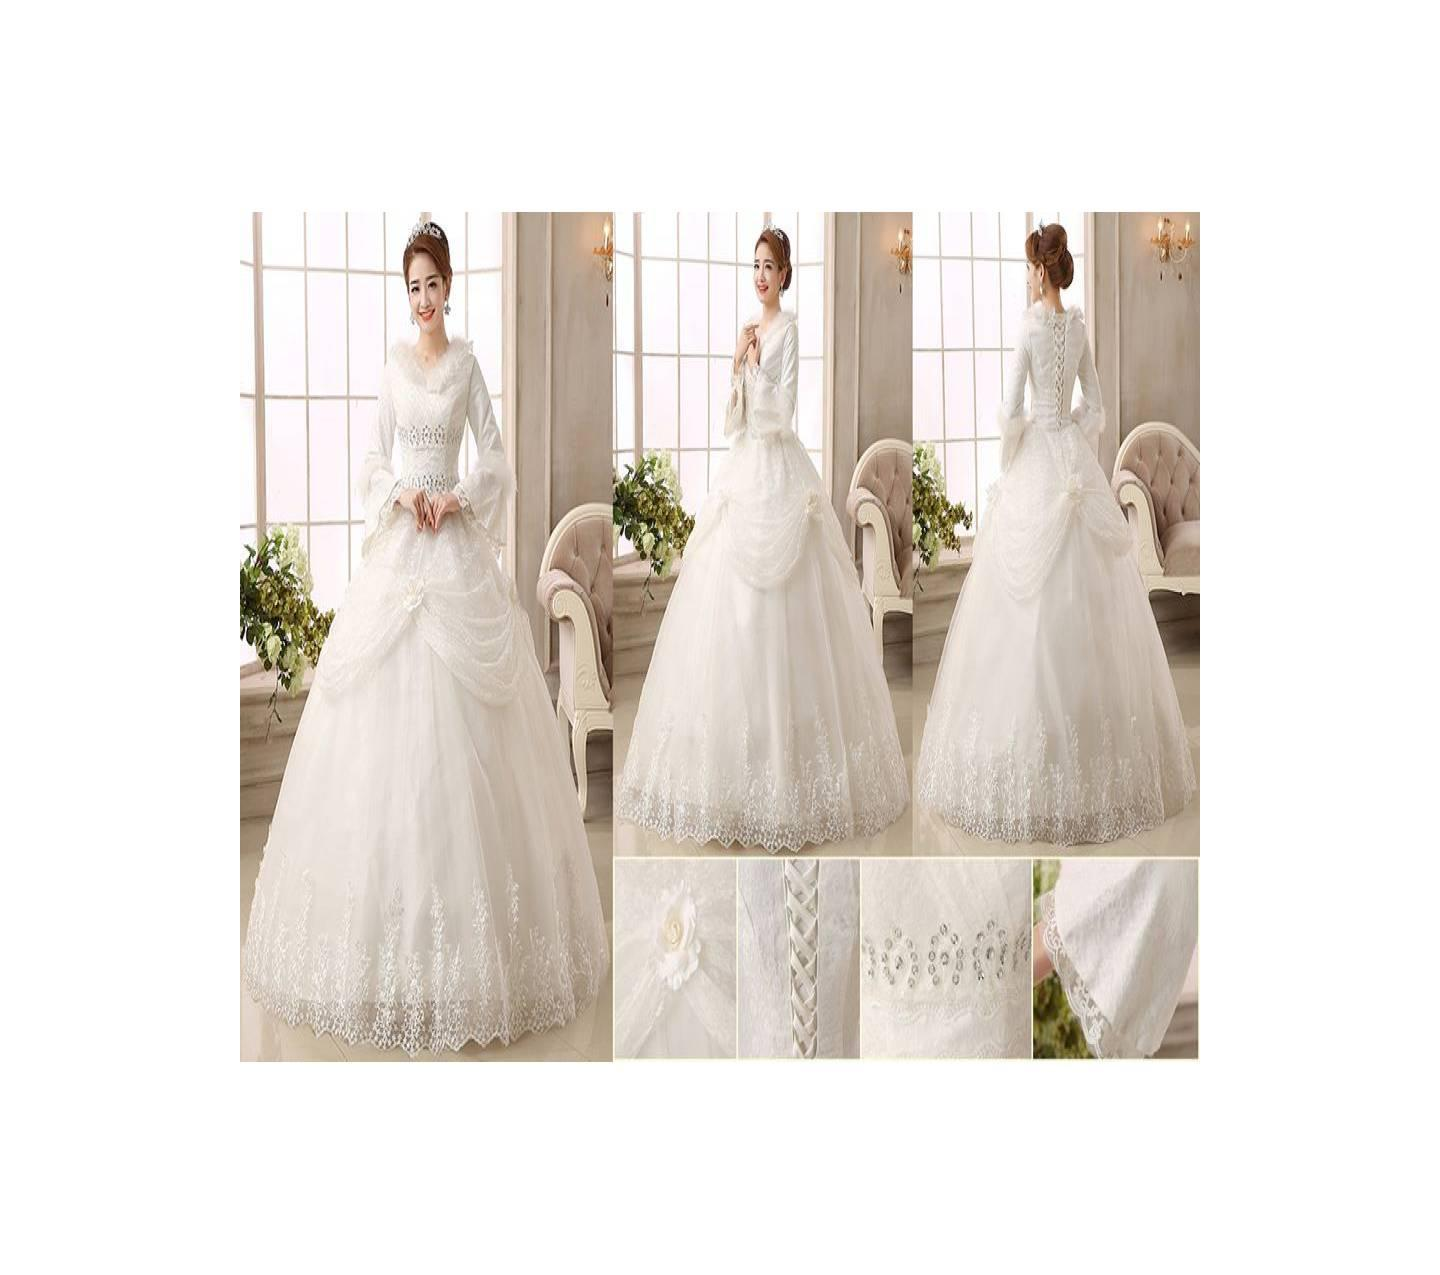 Gaun pengantin wedding dress import muslimah lengan panjang